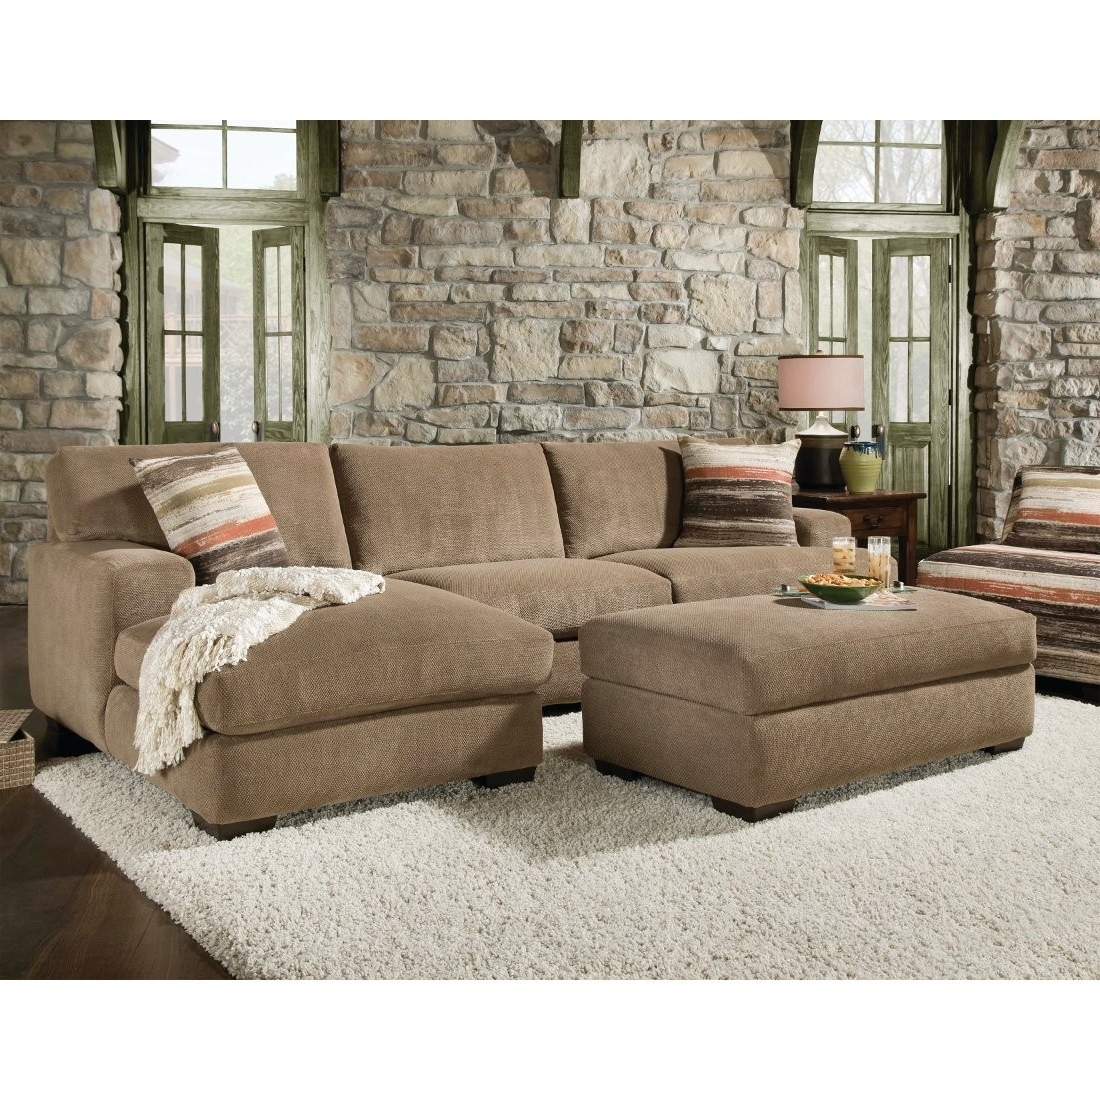 Trendy Sectional Sofas With Chaise Lounge Regarding Ethan Allen Sectional  Sofas Double Chaise Sectional U Shaped